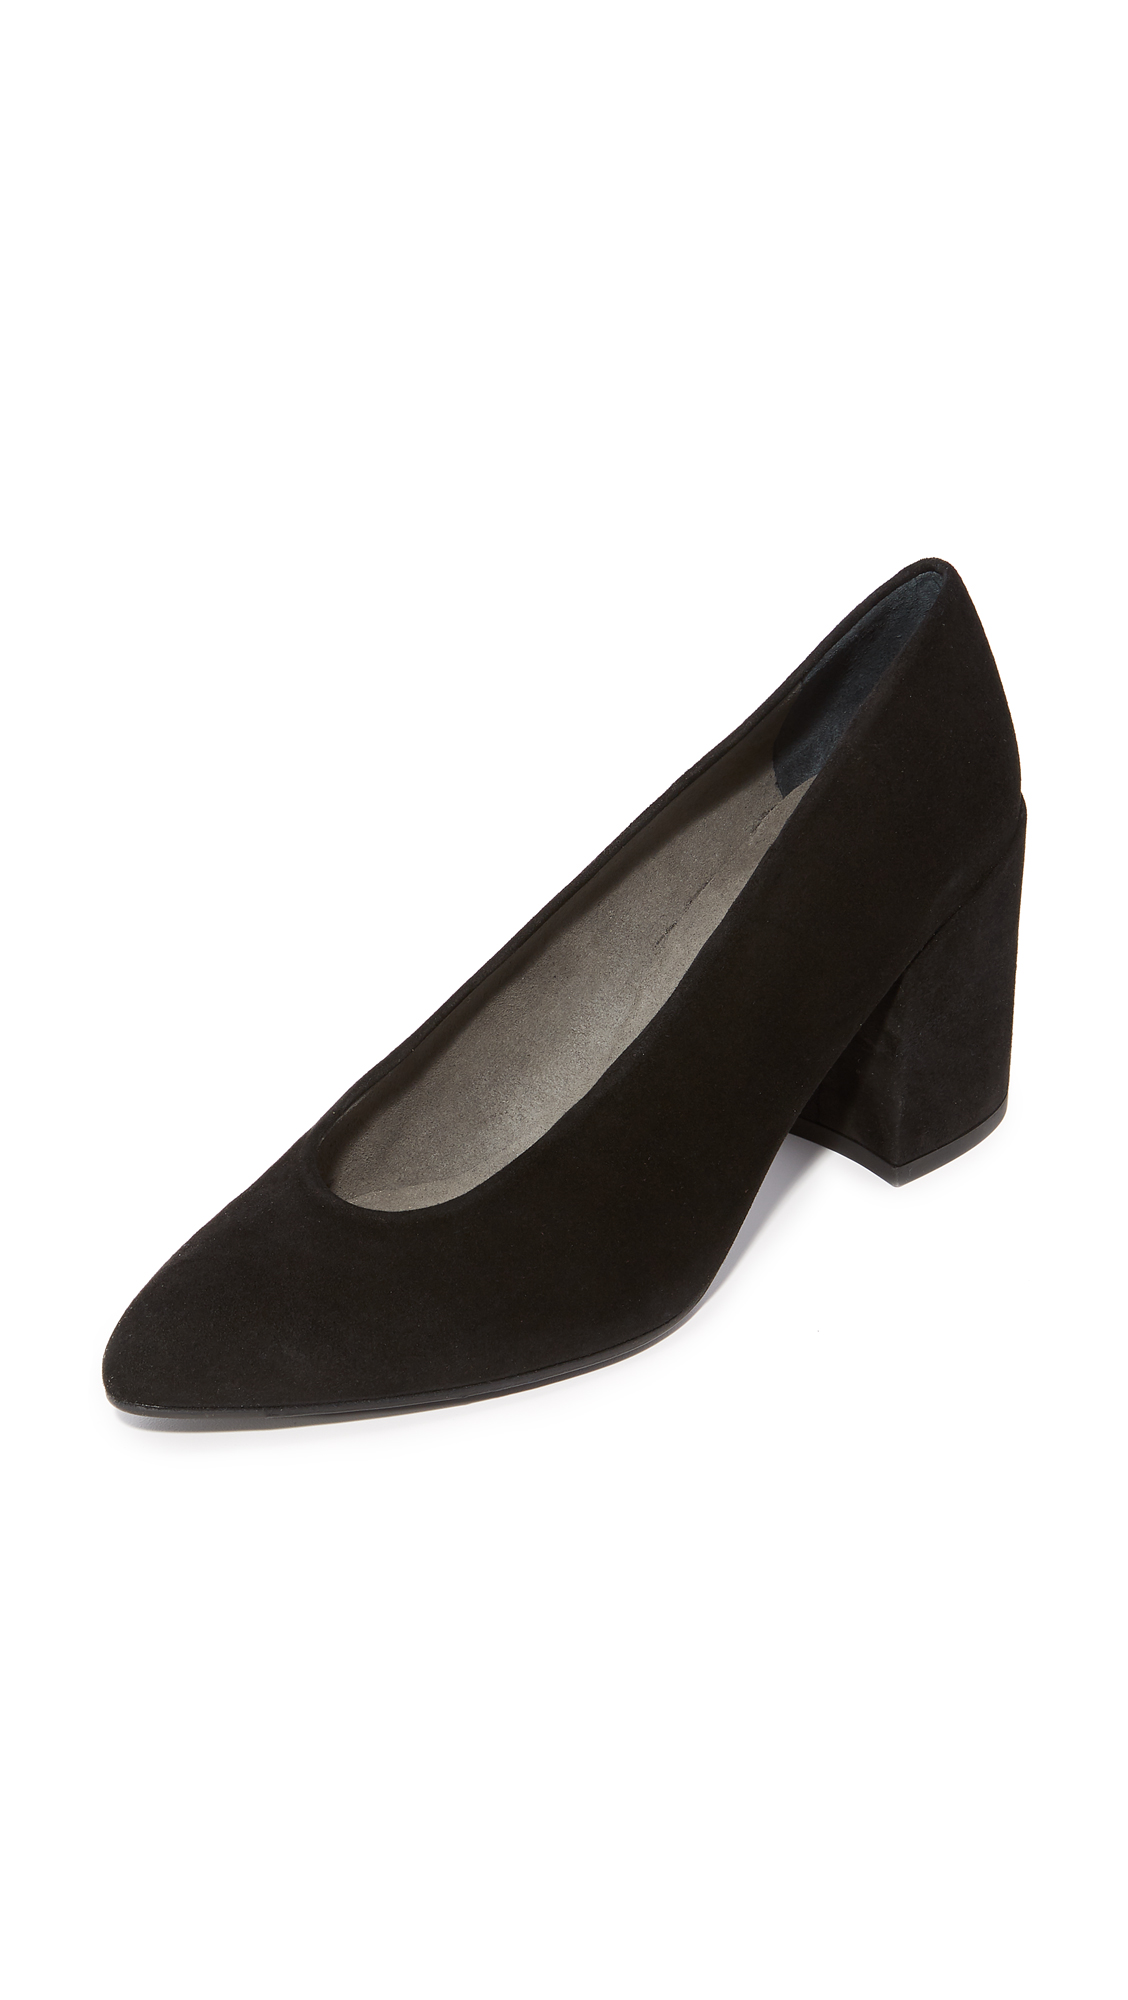 Stuart Weitzman Choke Up Block Heel Pumps - Black